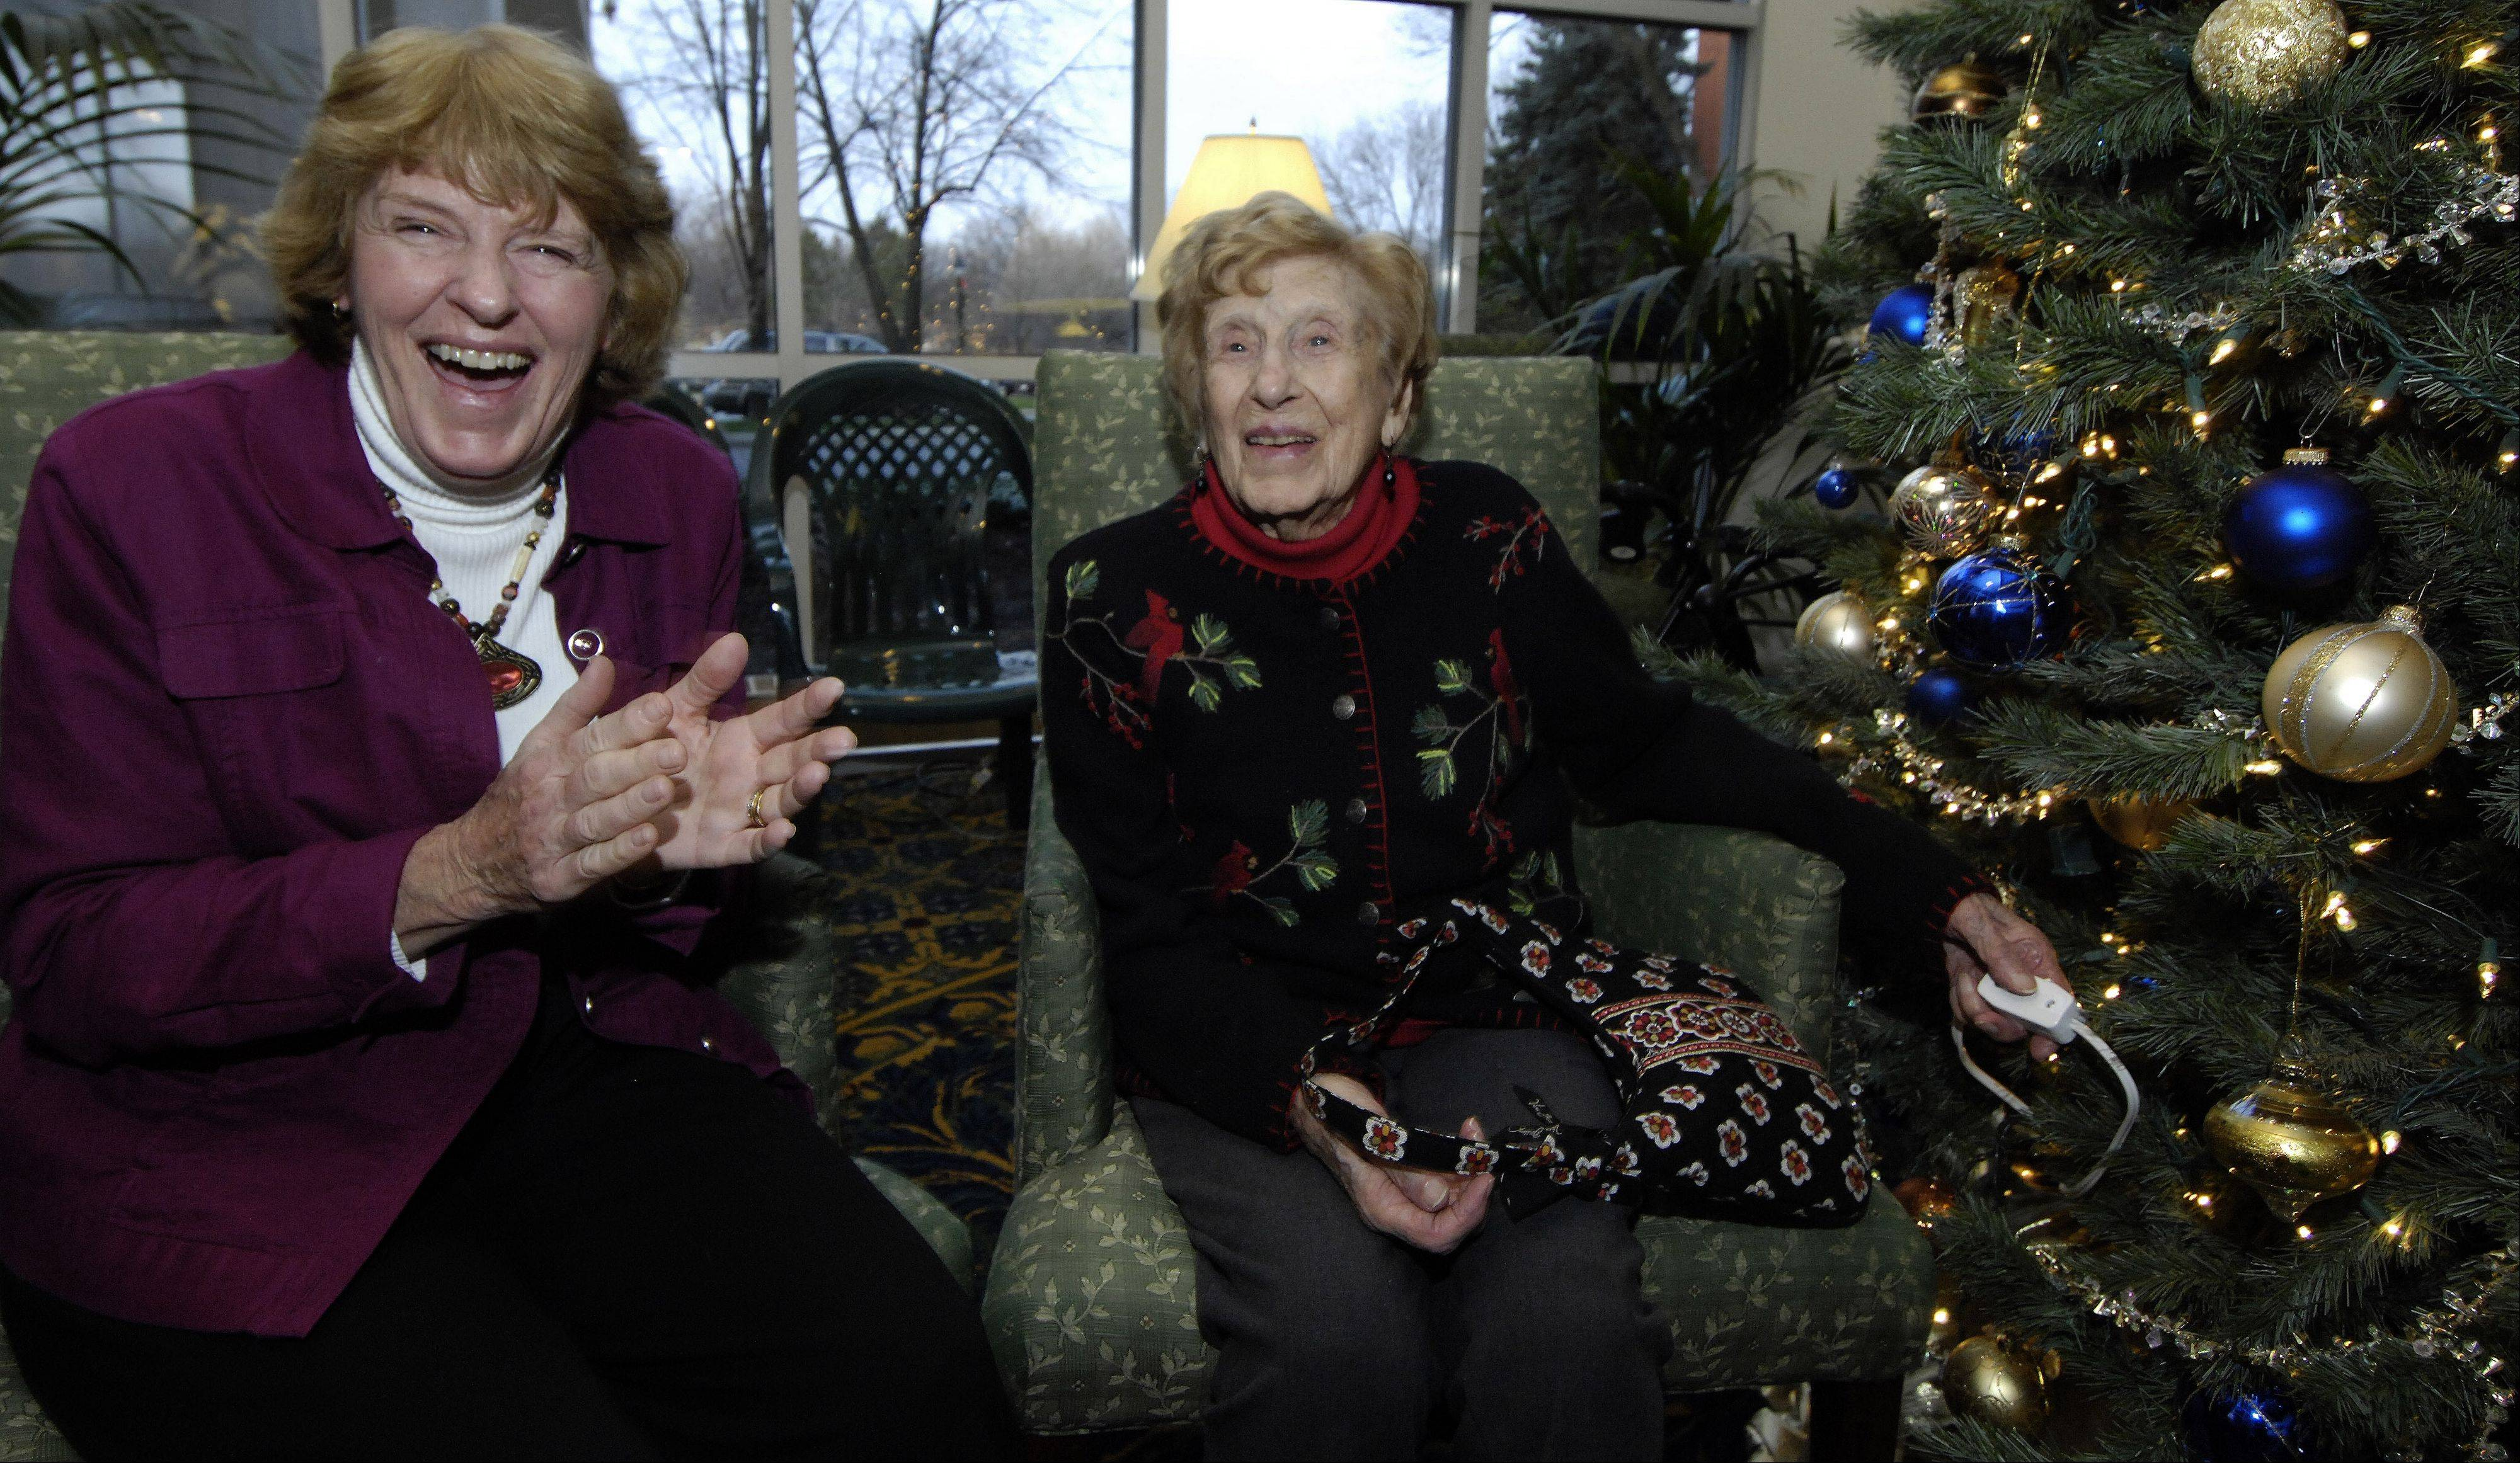 JOE LEWNARD/jlewnard@dailyherald.comLois Arbanas marked her 105th birthday by lighting the Christmas tree at The Moorings of Arlington Heights with her daughter, Anne Feichter of Elk Grove Village. Arbanas says the key to her longevity has been doing things in moderation.